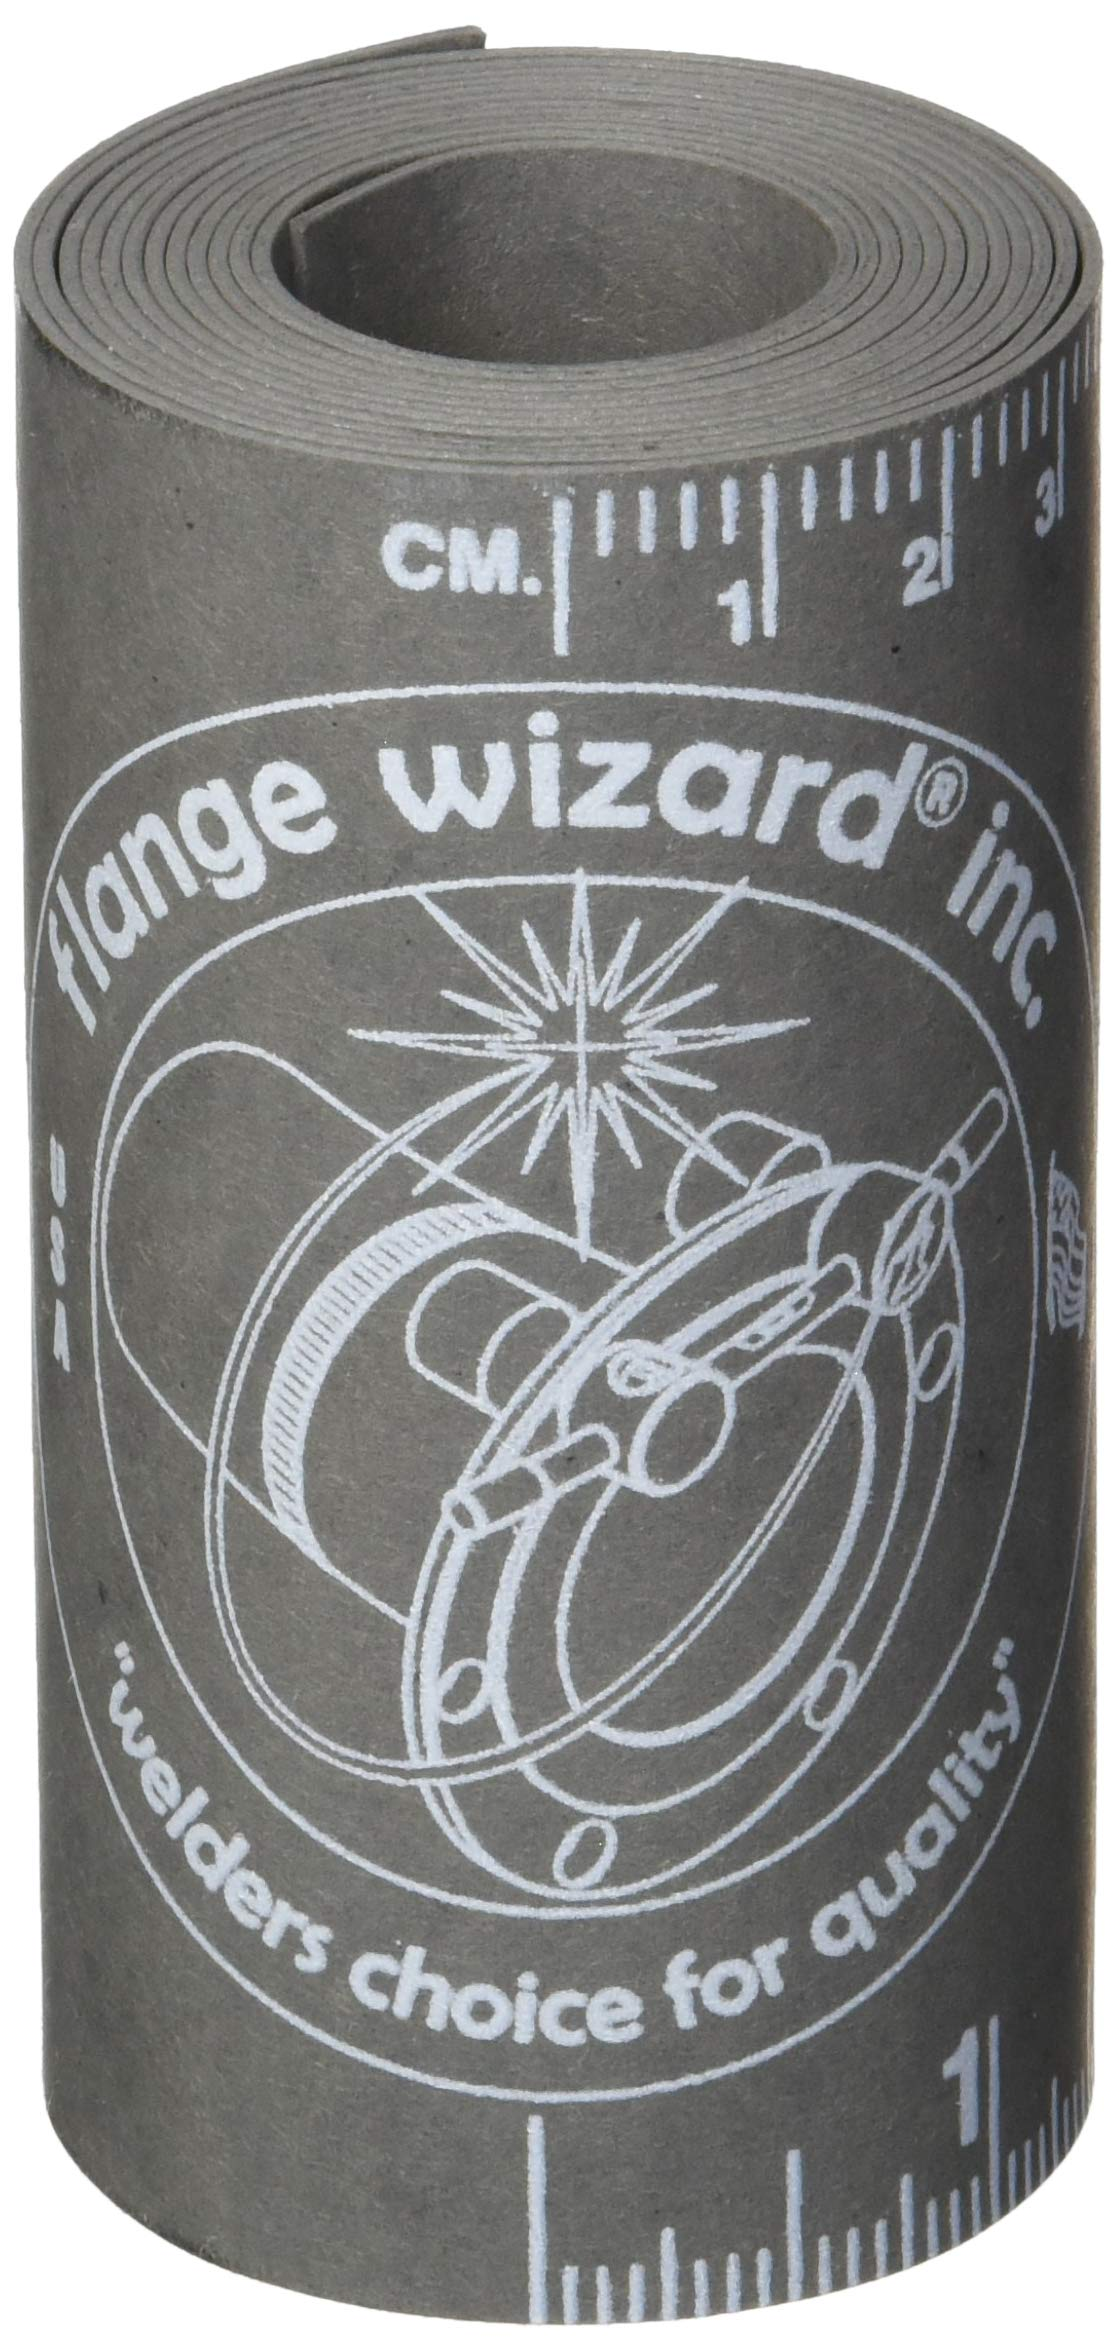 Flange Wizard 496-WW-17 Wizard Wrap Med 2 Inch To 16 Inch Pipe